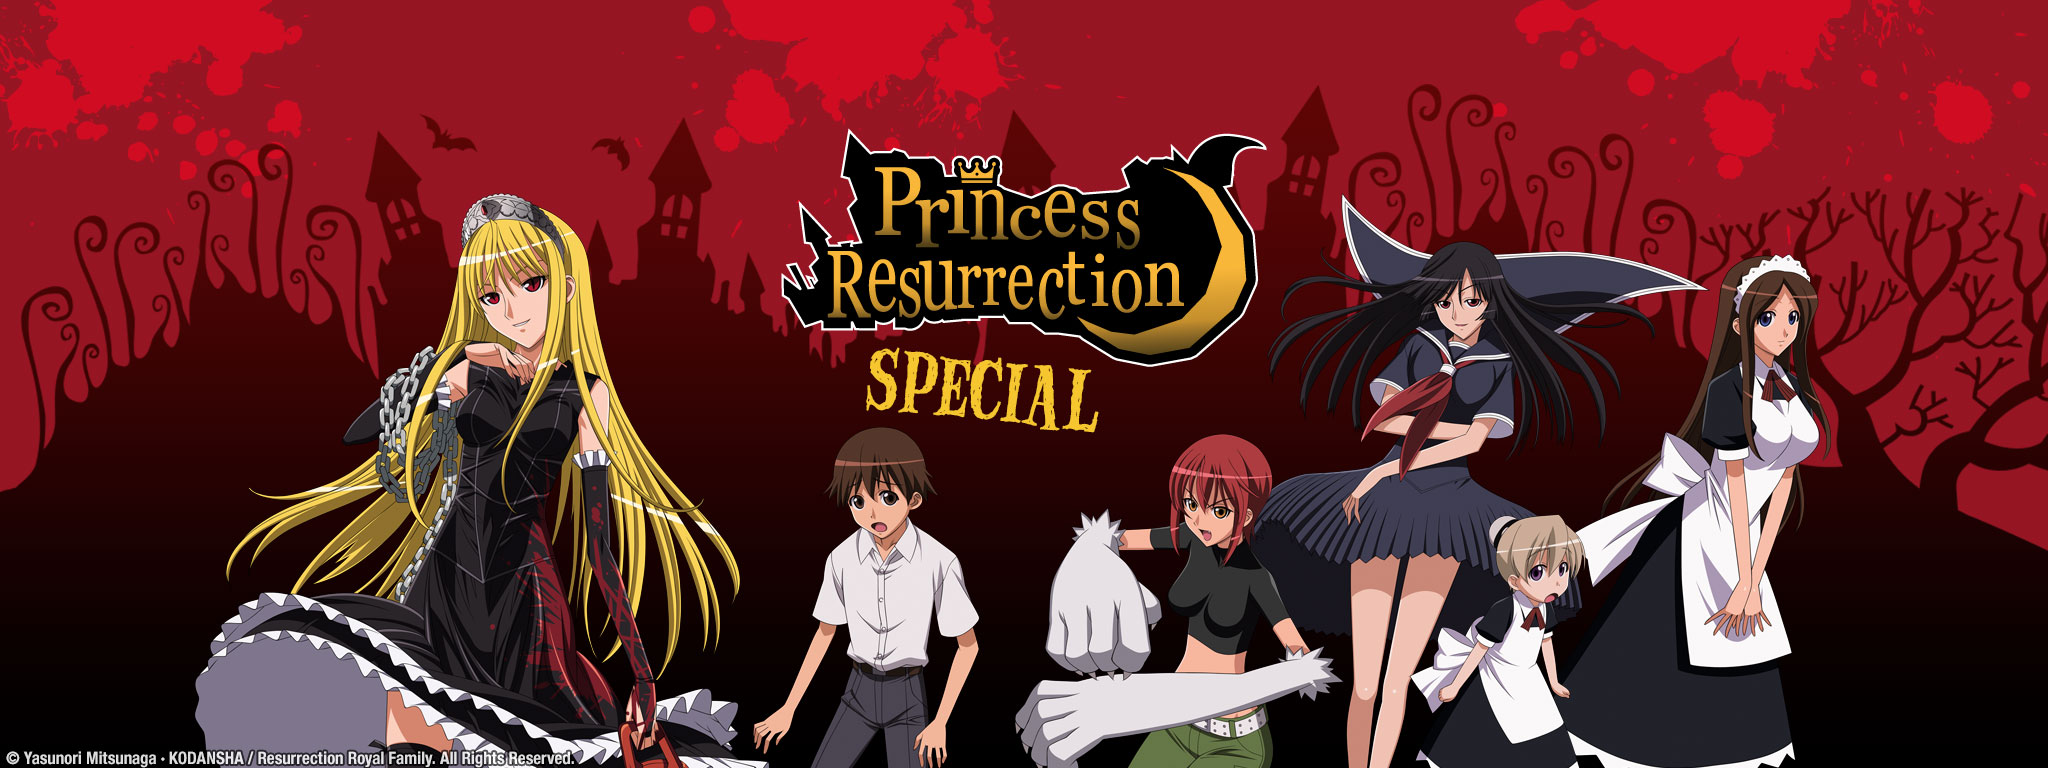 Princess Resurrection Special